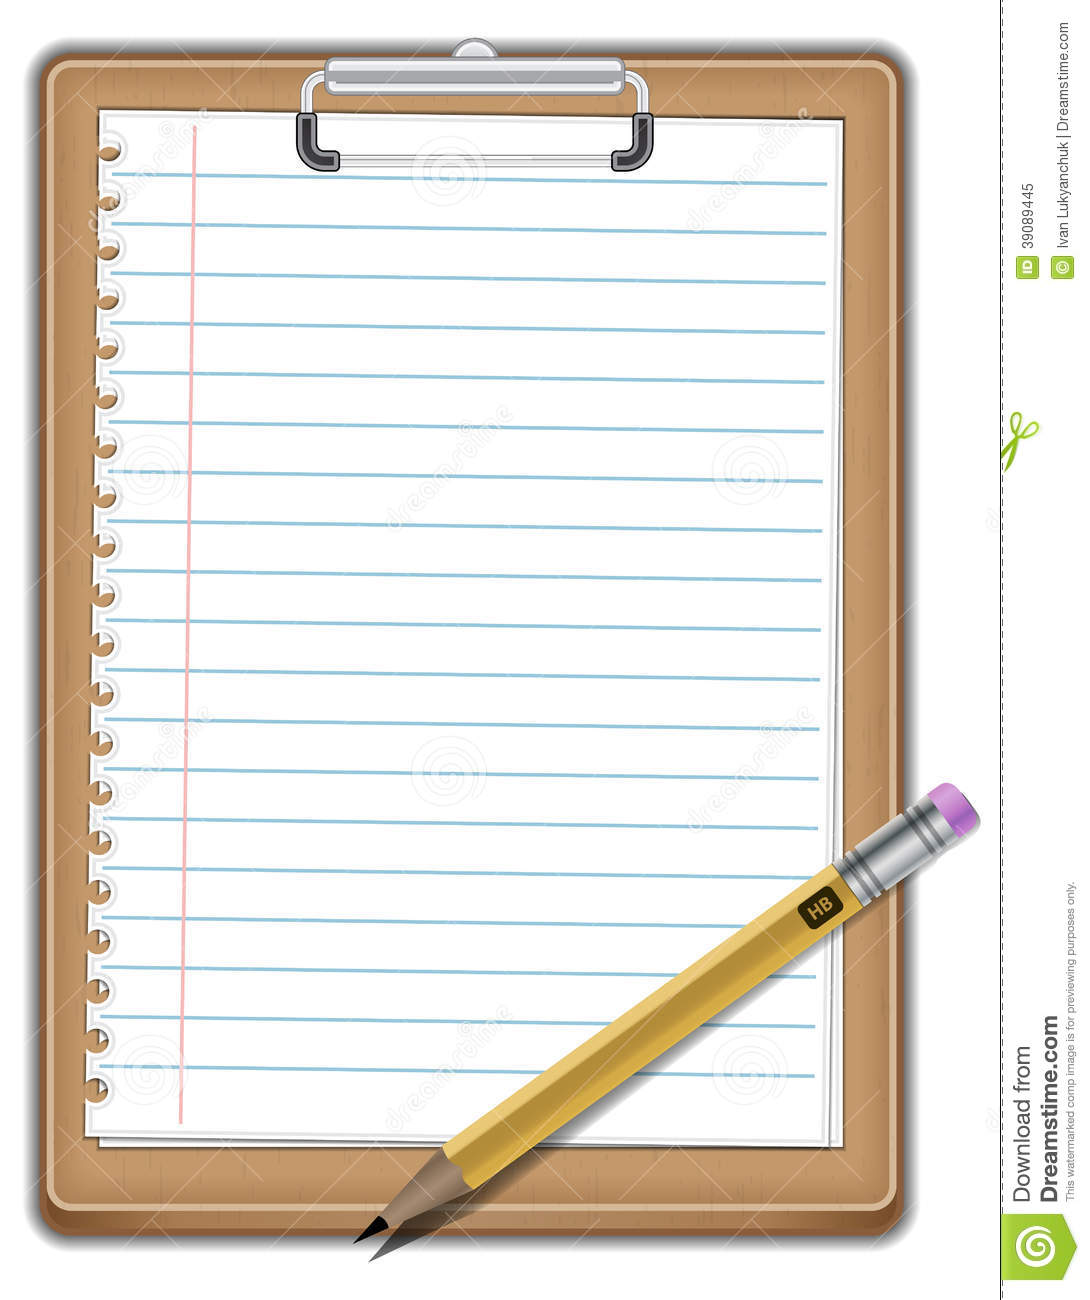 Notepad With Pencil Stock Vector - Image: 39089445